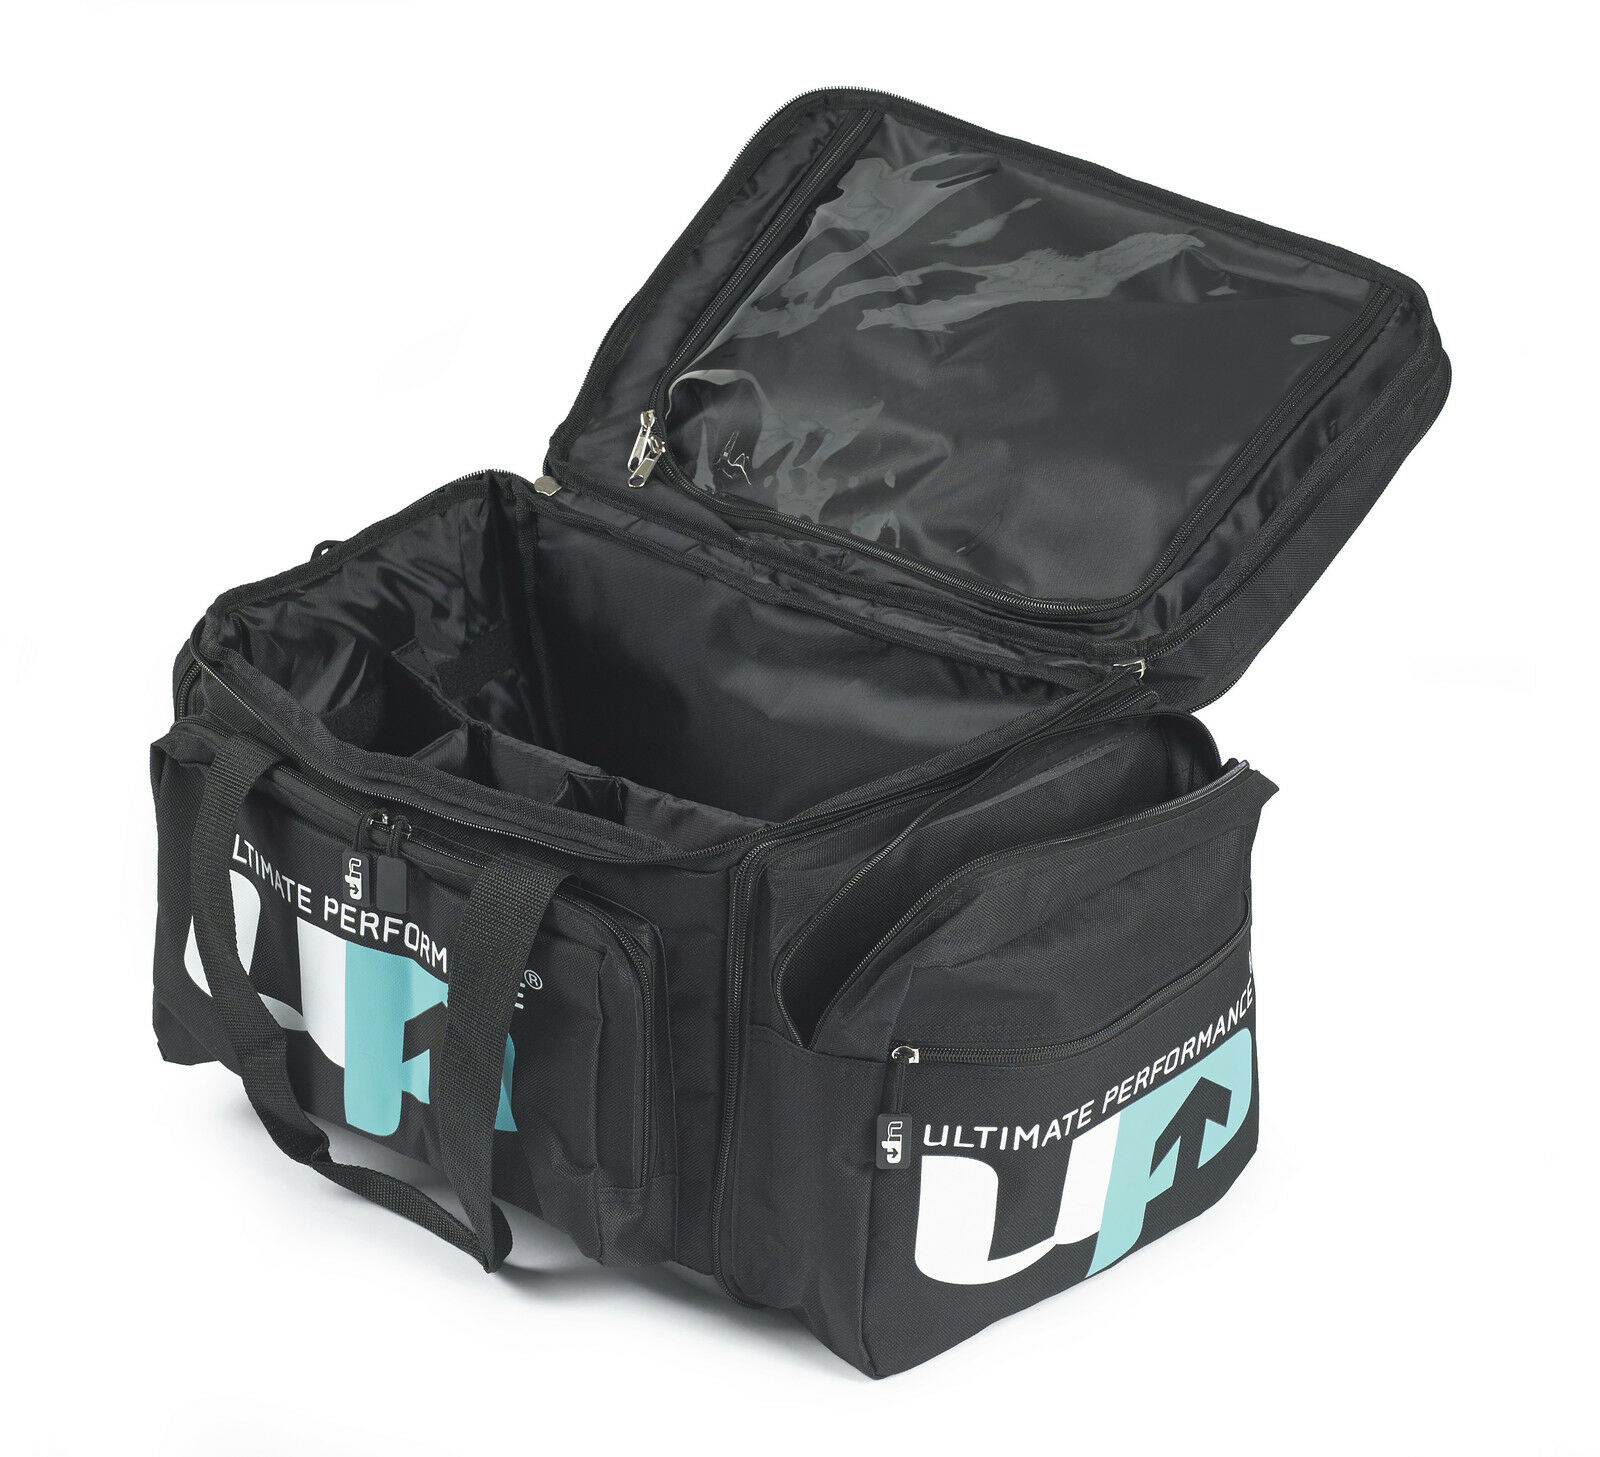 ULTIMATE Performance ™ MEDICAL BAGSPORTIVE PHYSIO MEDICAL BAG PER Essentials